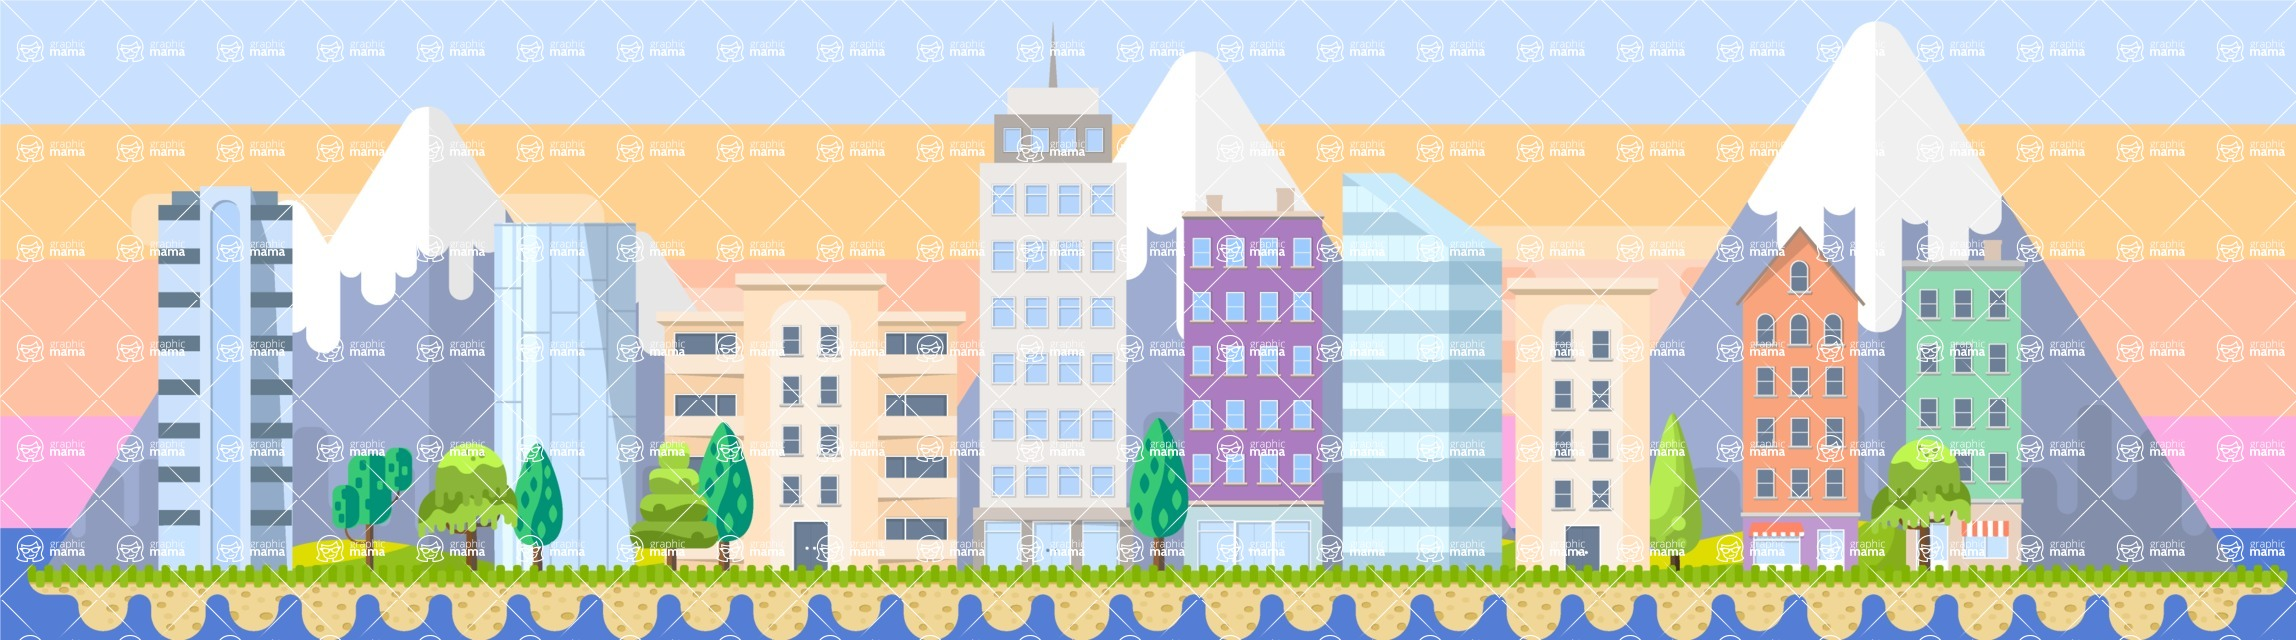 Background Vector Creation pack. A rich collection of flat vector elements for nature landscapes, city skylines, futuristic towns, fantastic scenes.  - Backgrounds 59